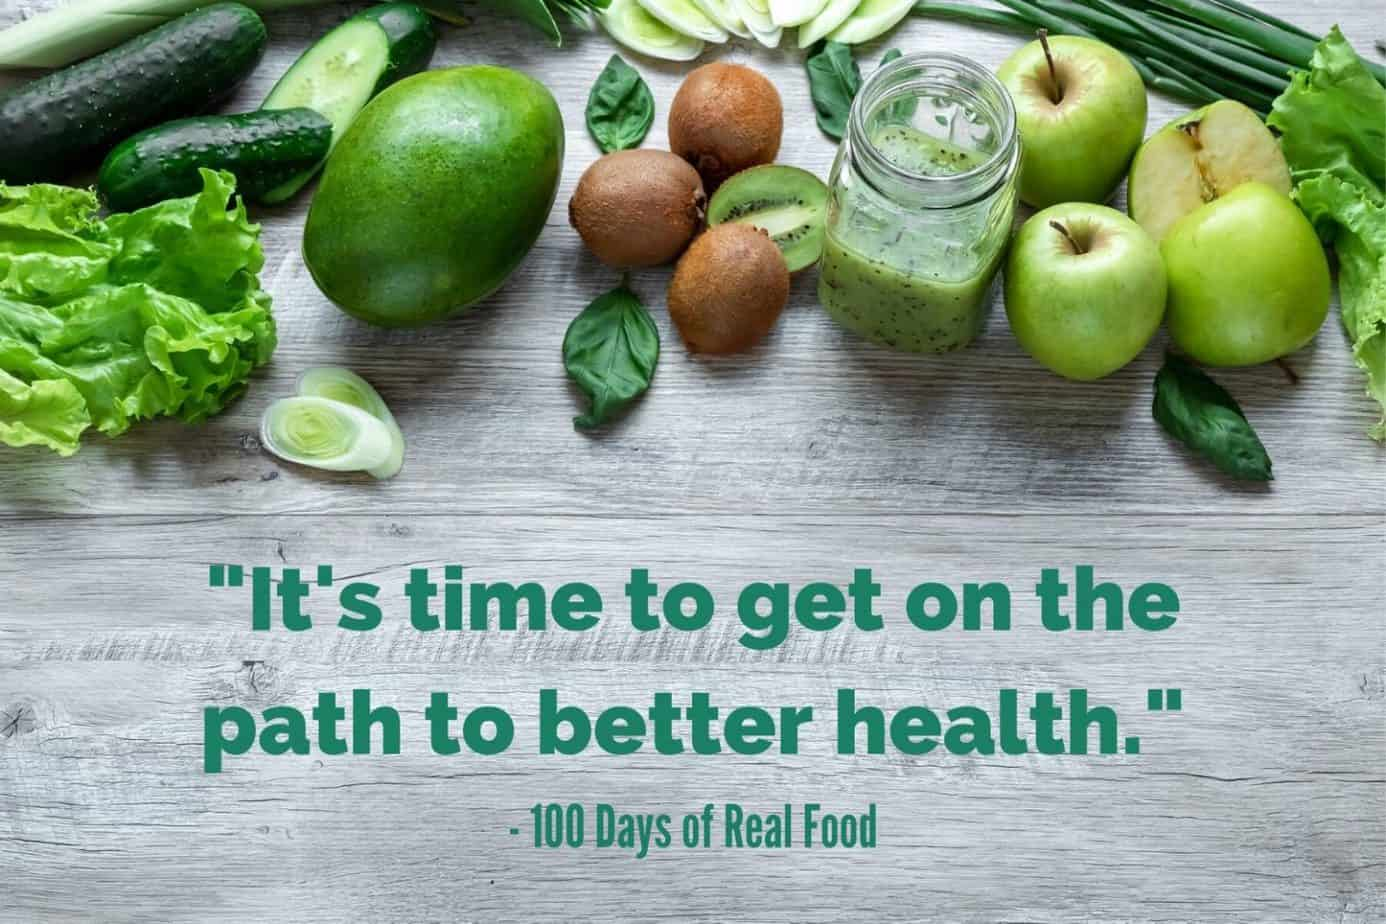 clean eating blog - 100 Days of Real Food